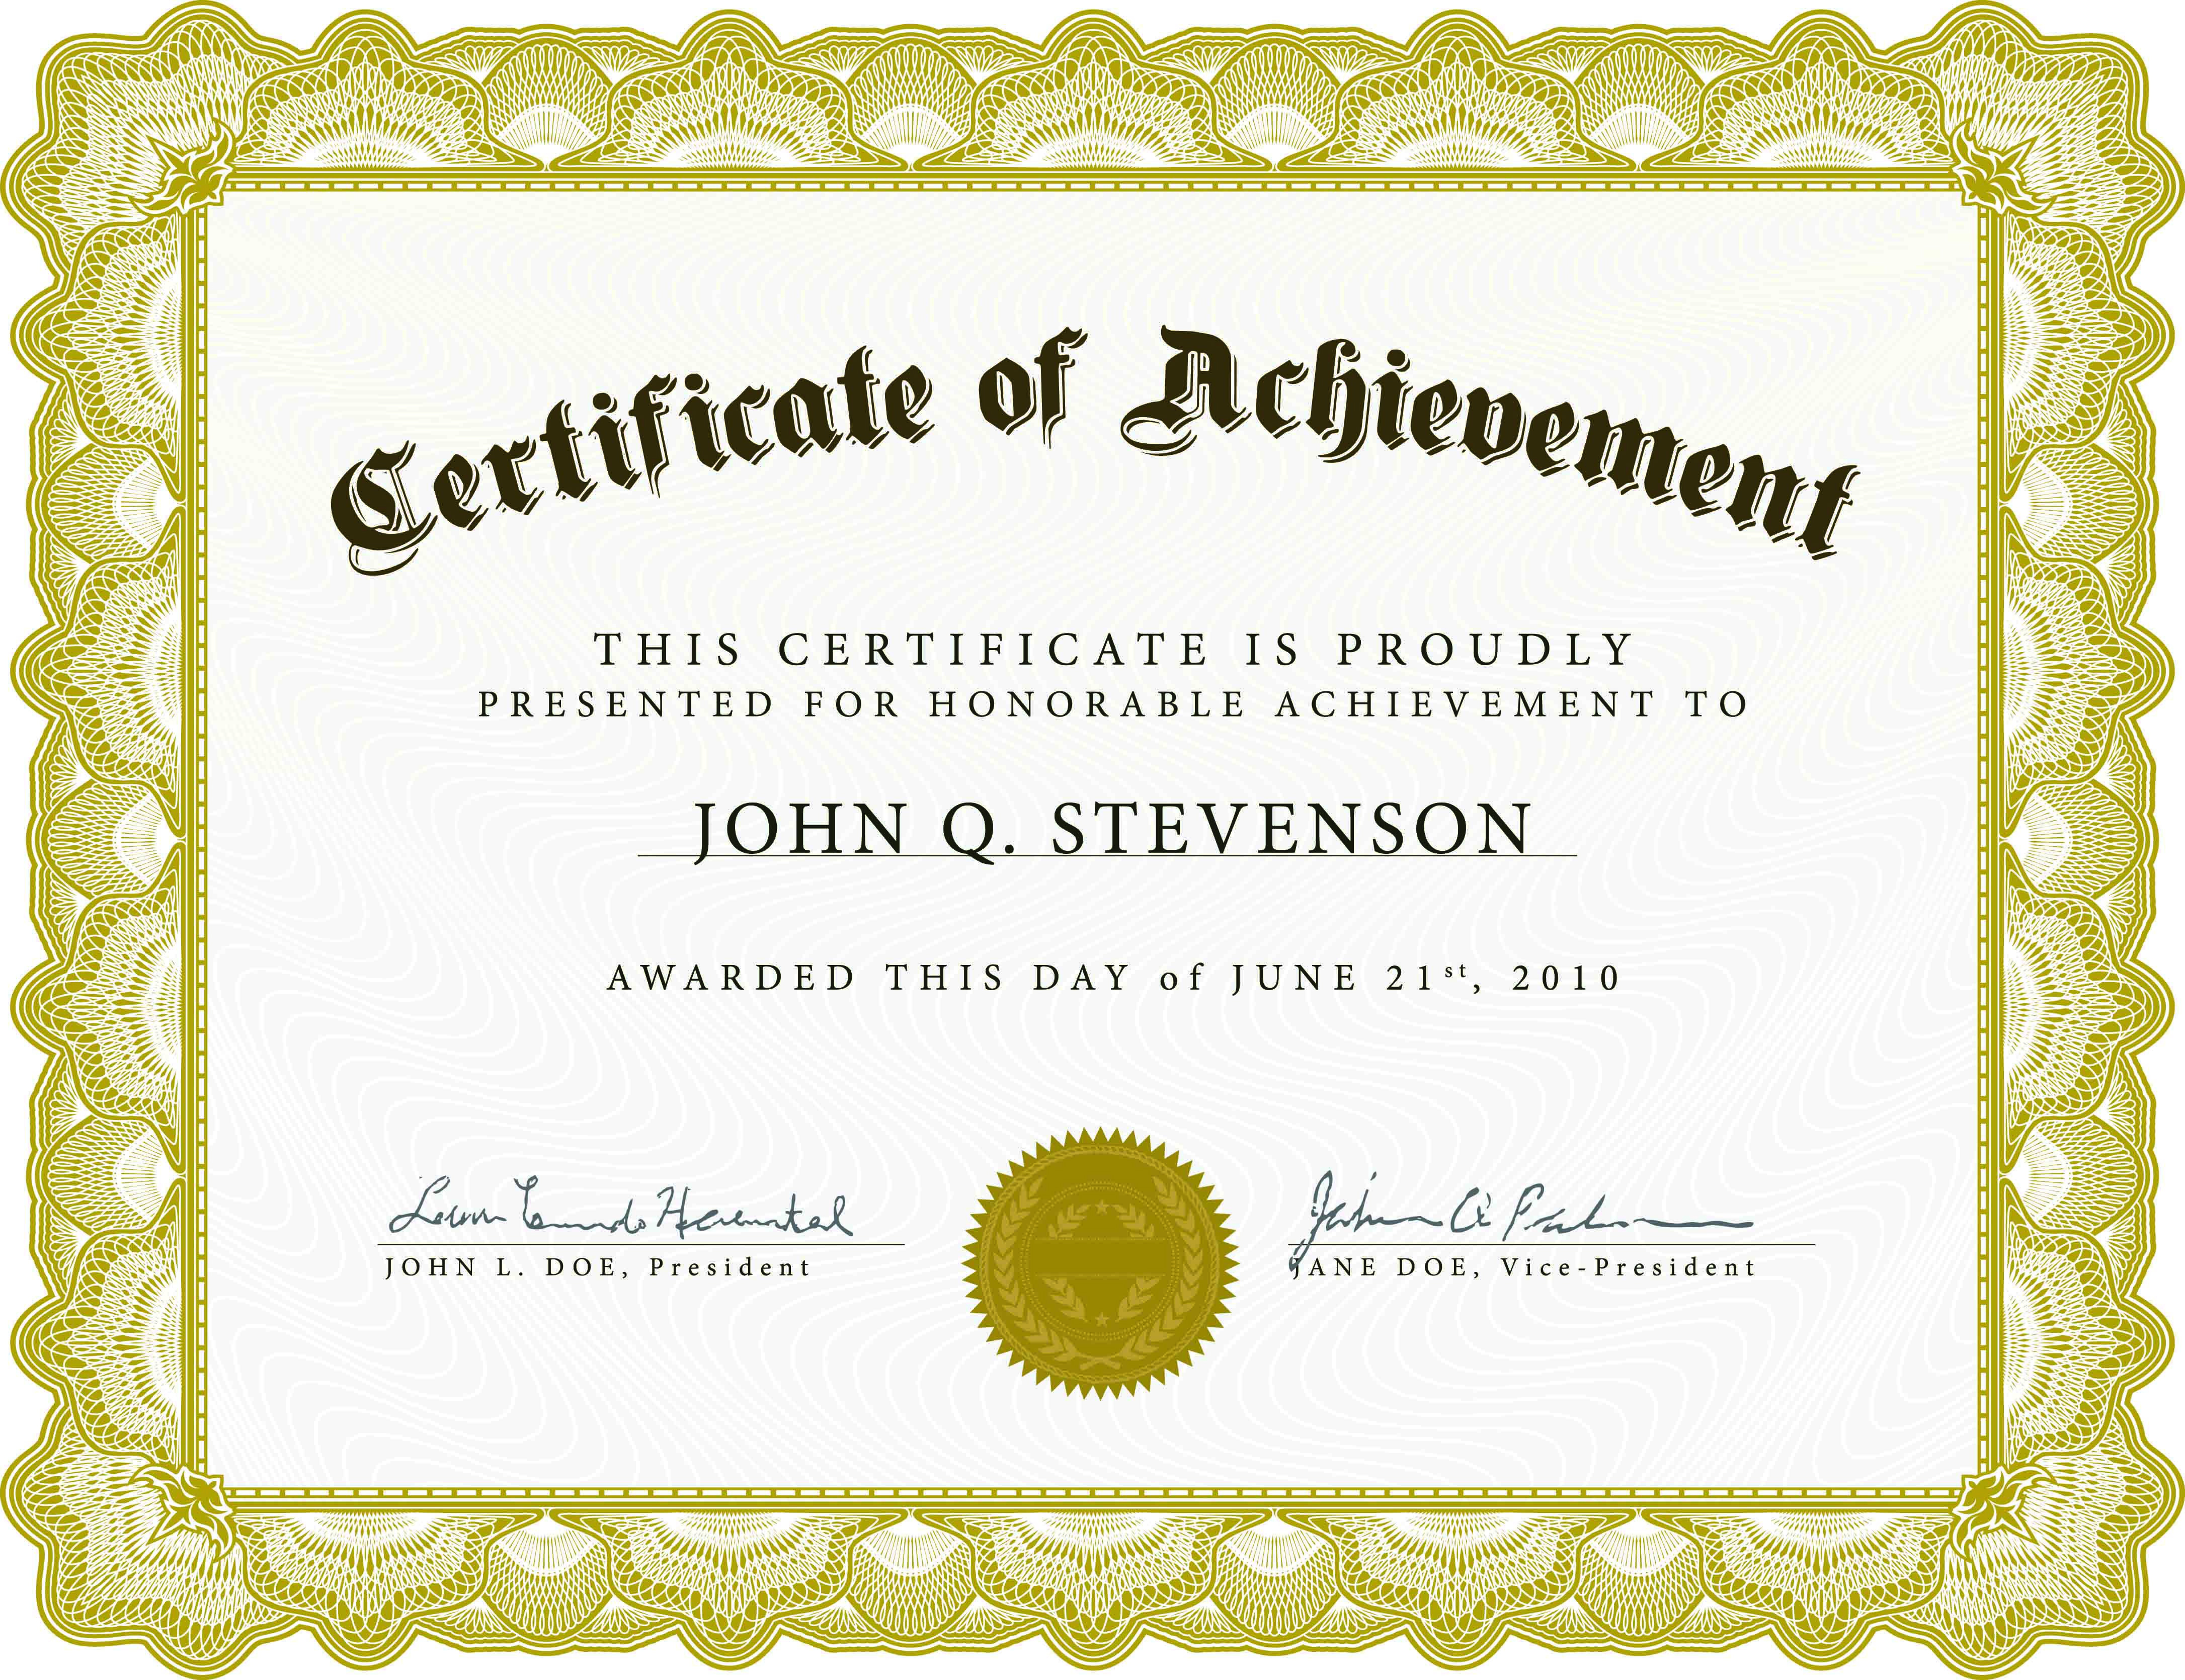 Download Blank Certificate Template X3Hr9Dto | St. Gabriel's Youth - Certificate Of Completion Template Free Printable